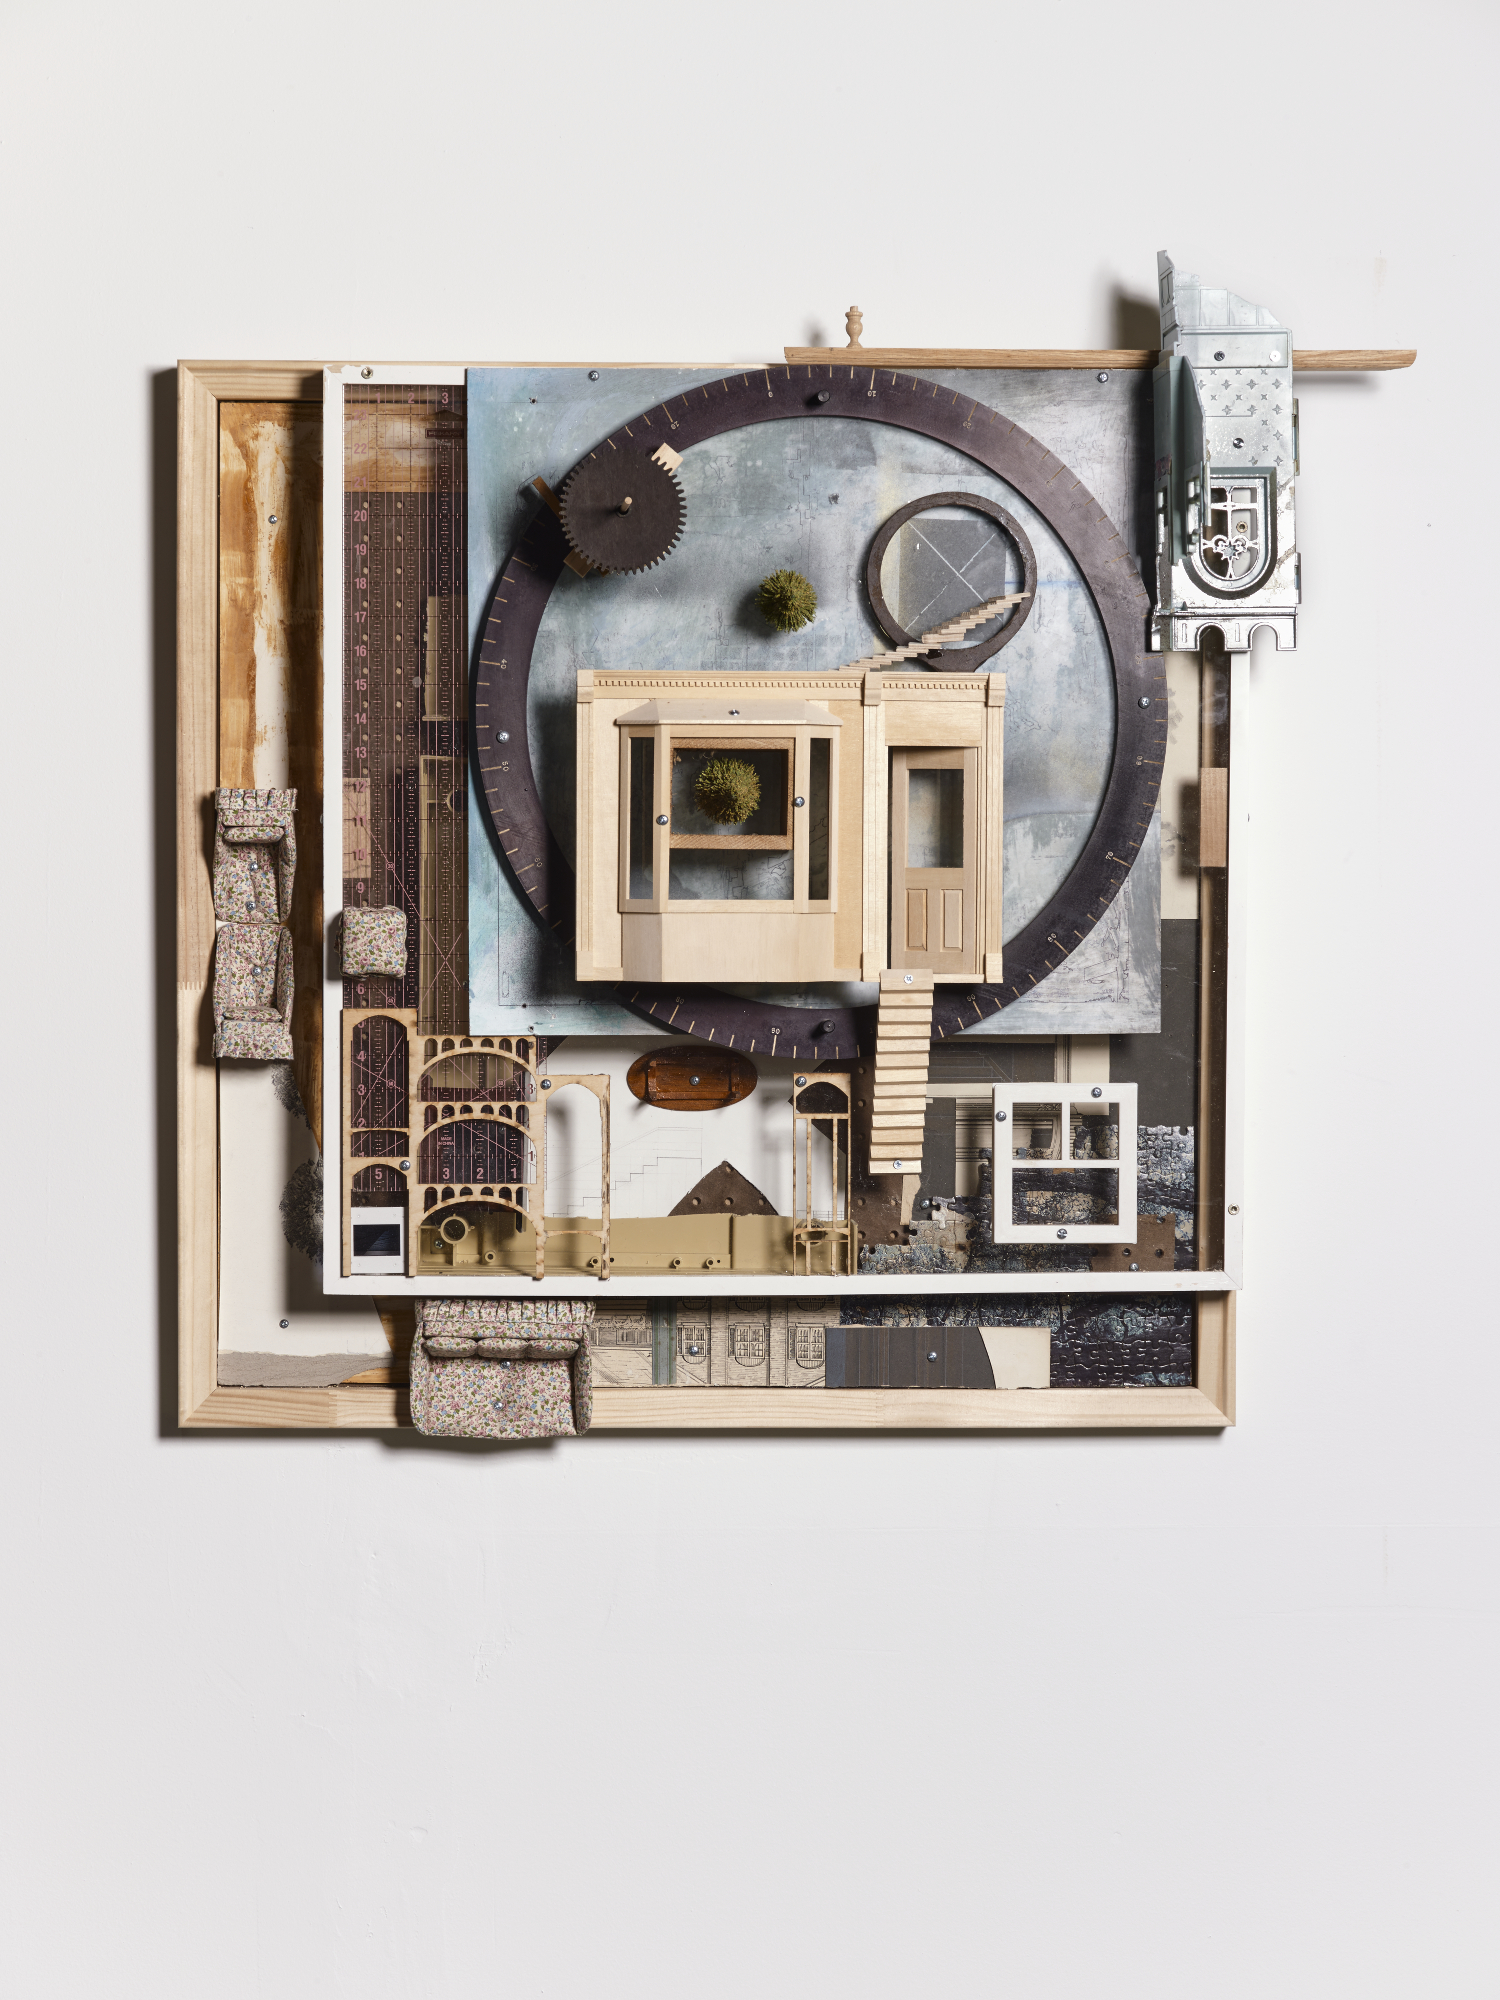 1120 Projects Maher_City of the Oscillator 2016.jpg